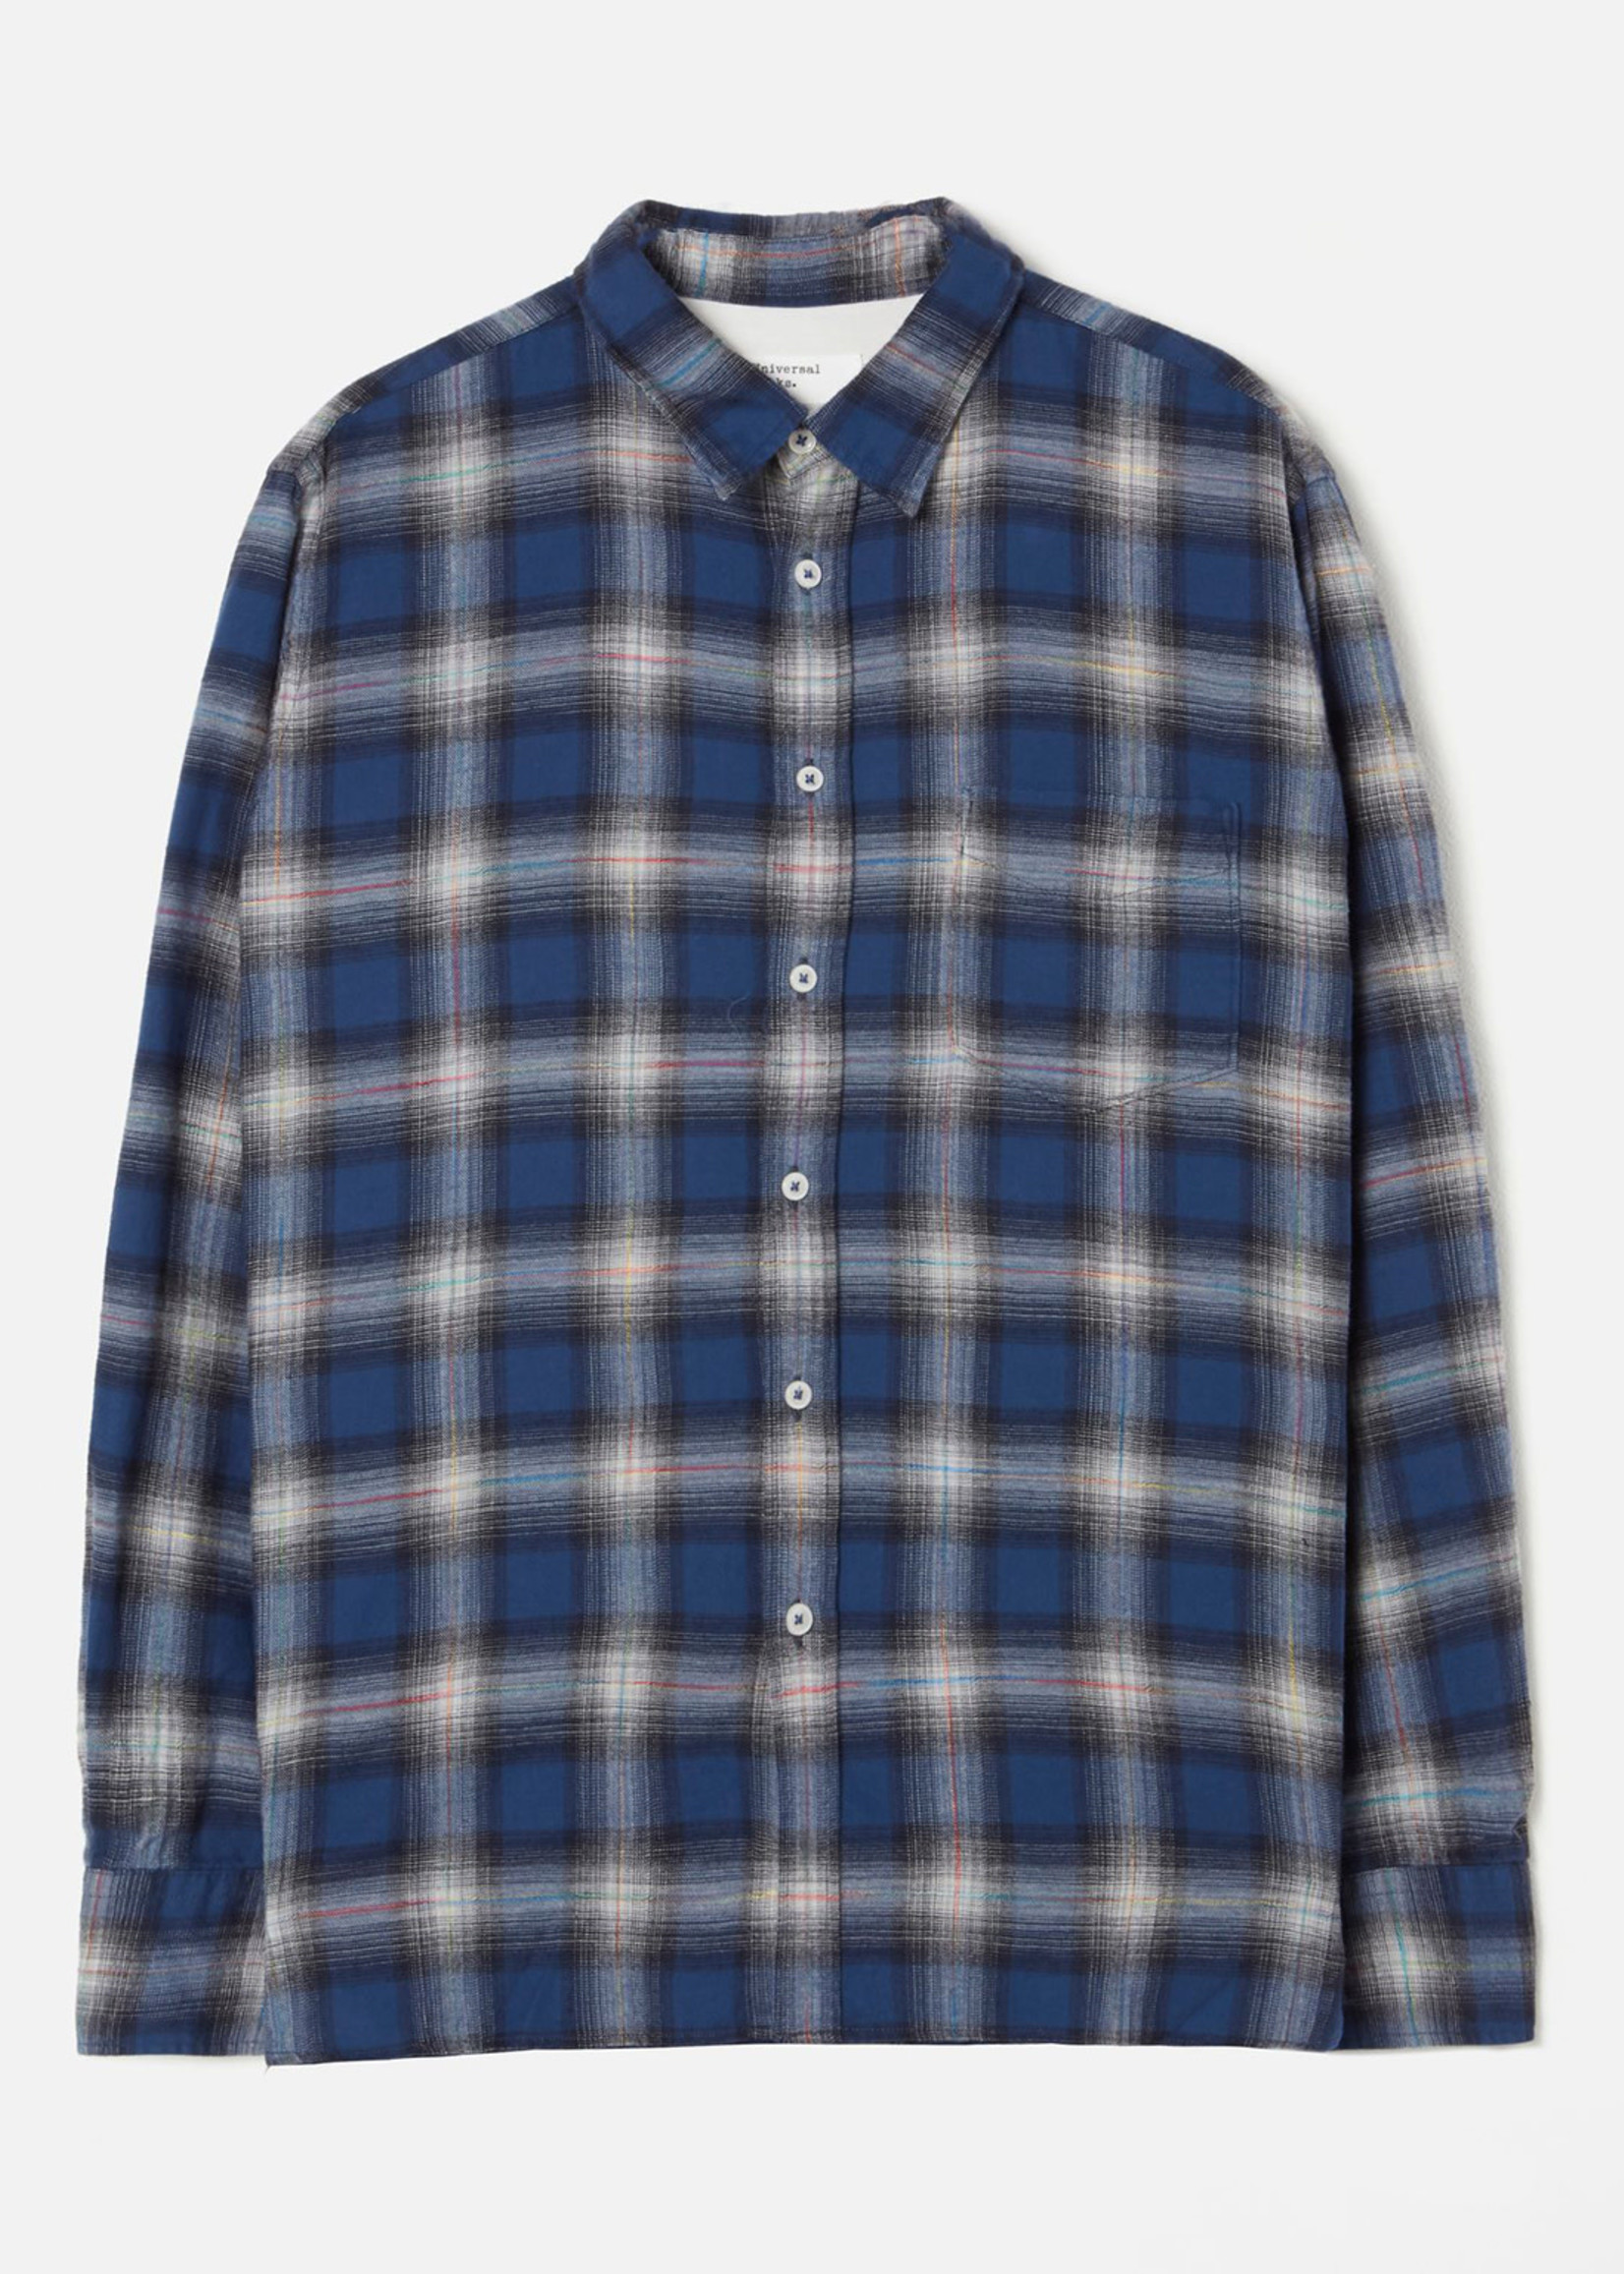 Universal Works New Standard Shirt Blue Plaid Cotton by  Universal Works